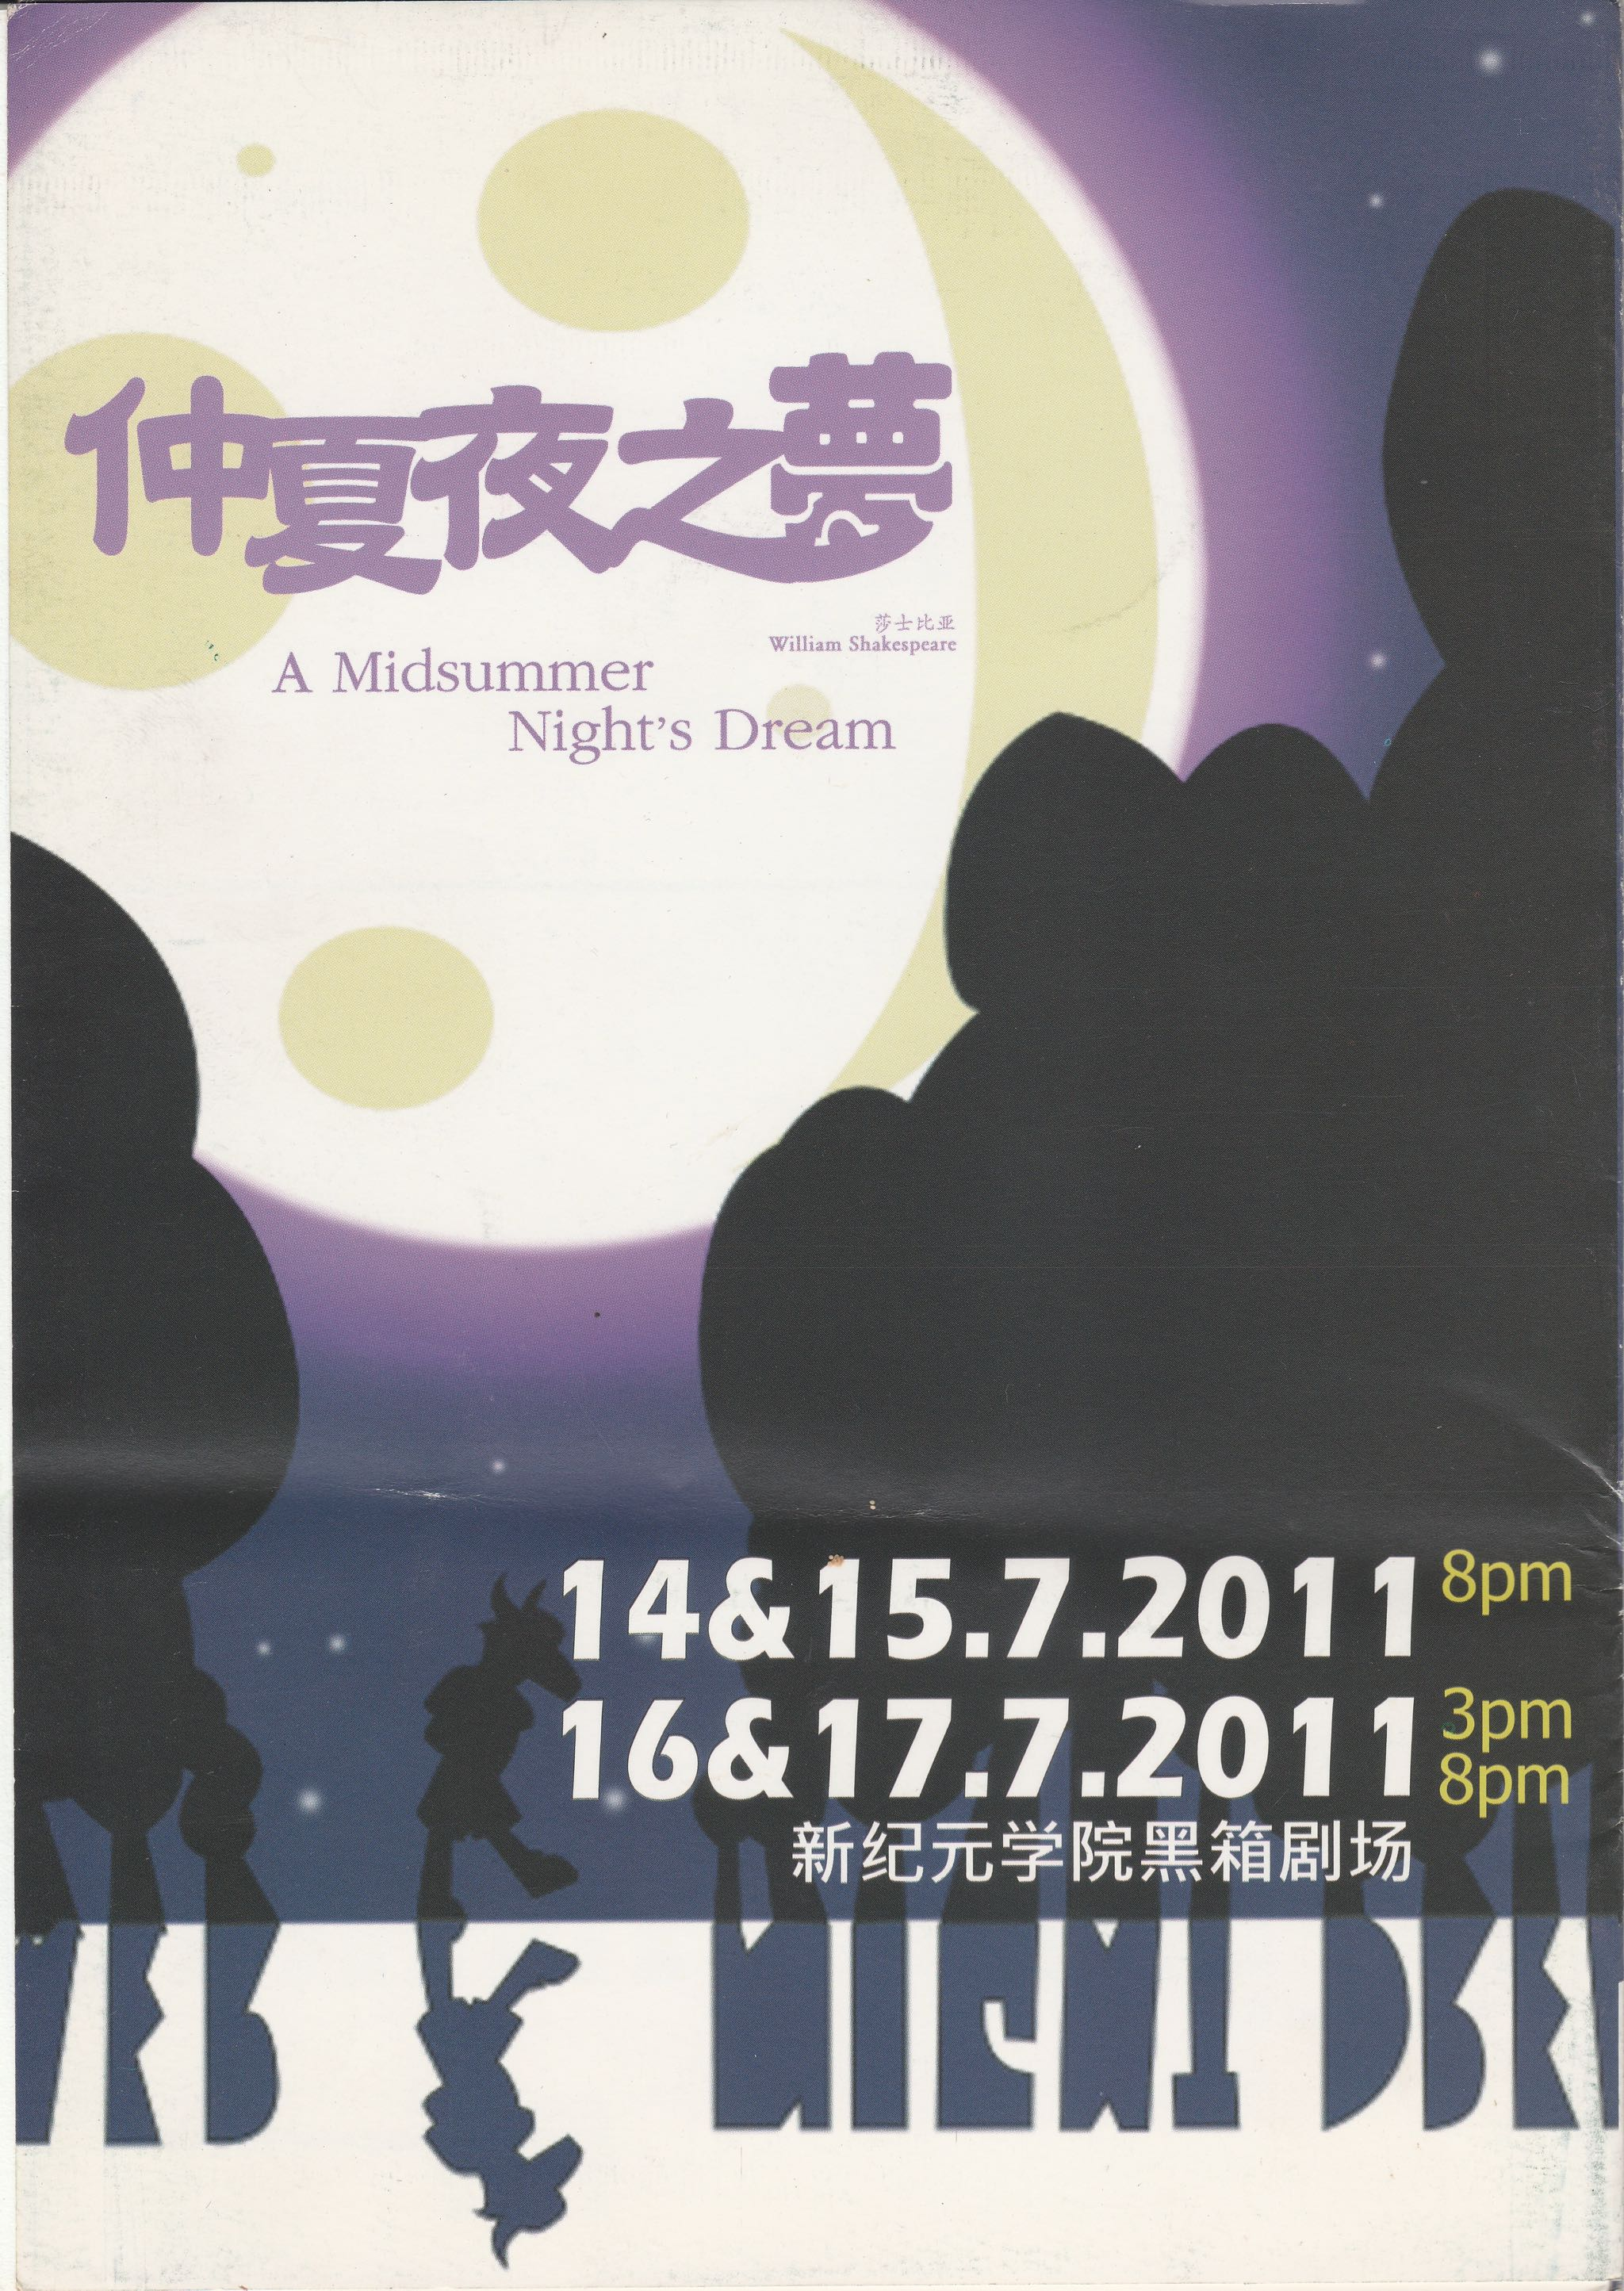 2011 A Midsummer Night's Dream Program Cover